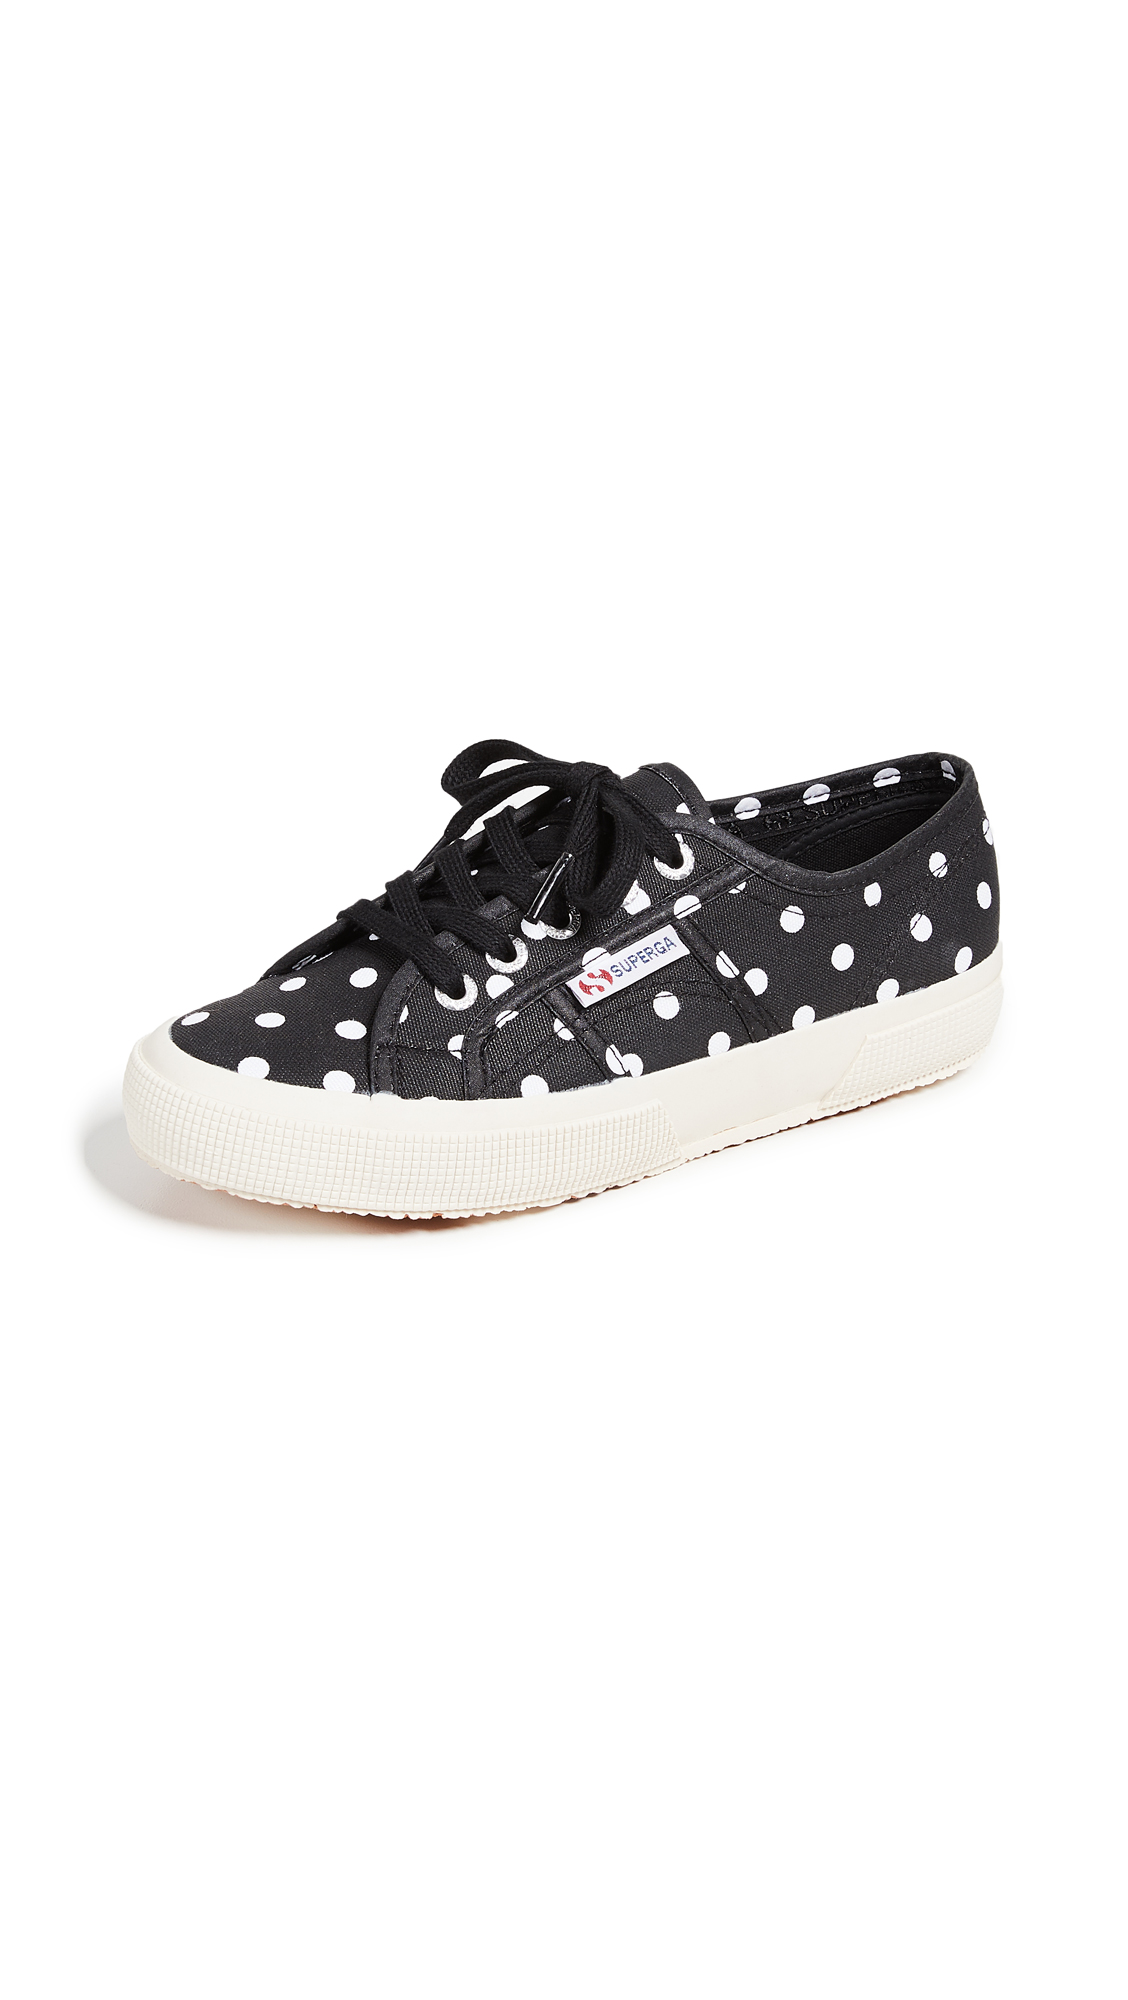 Superga 2750 Fantasy Cotu Sneakers - Black Multi